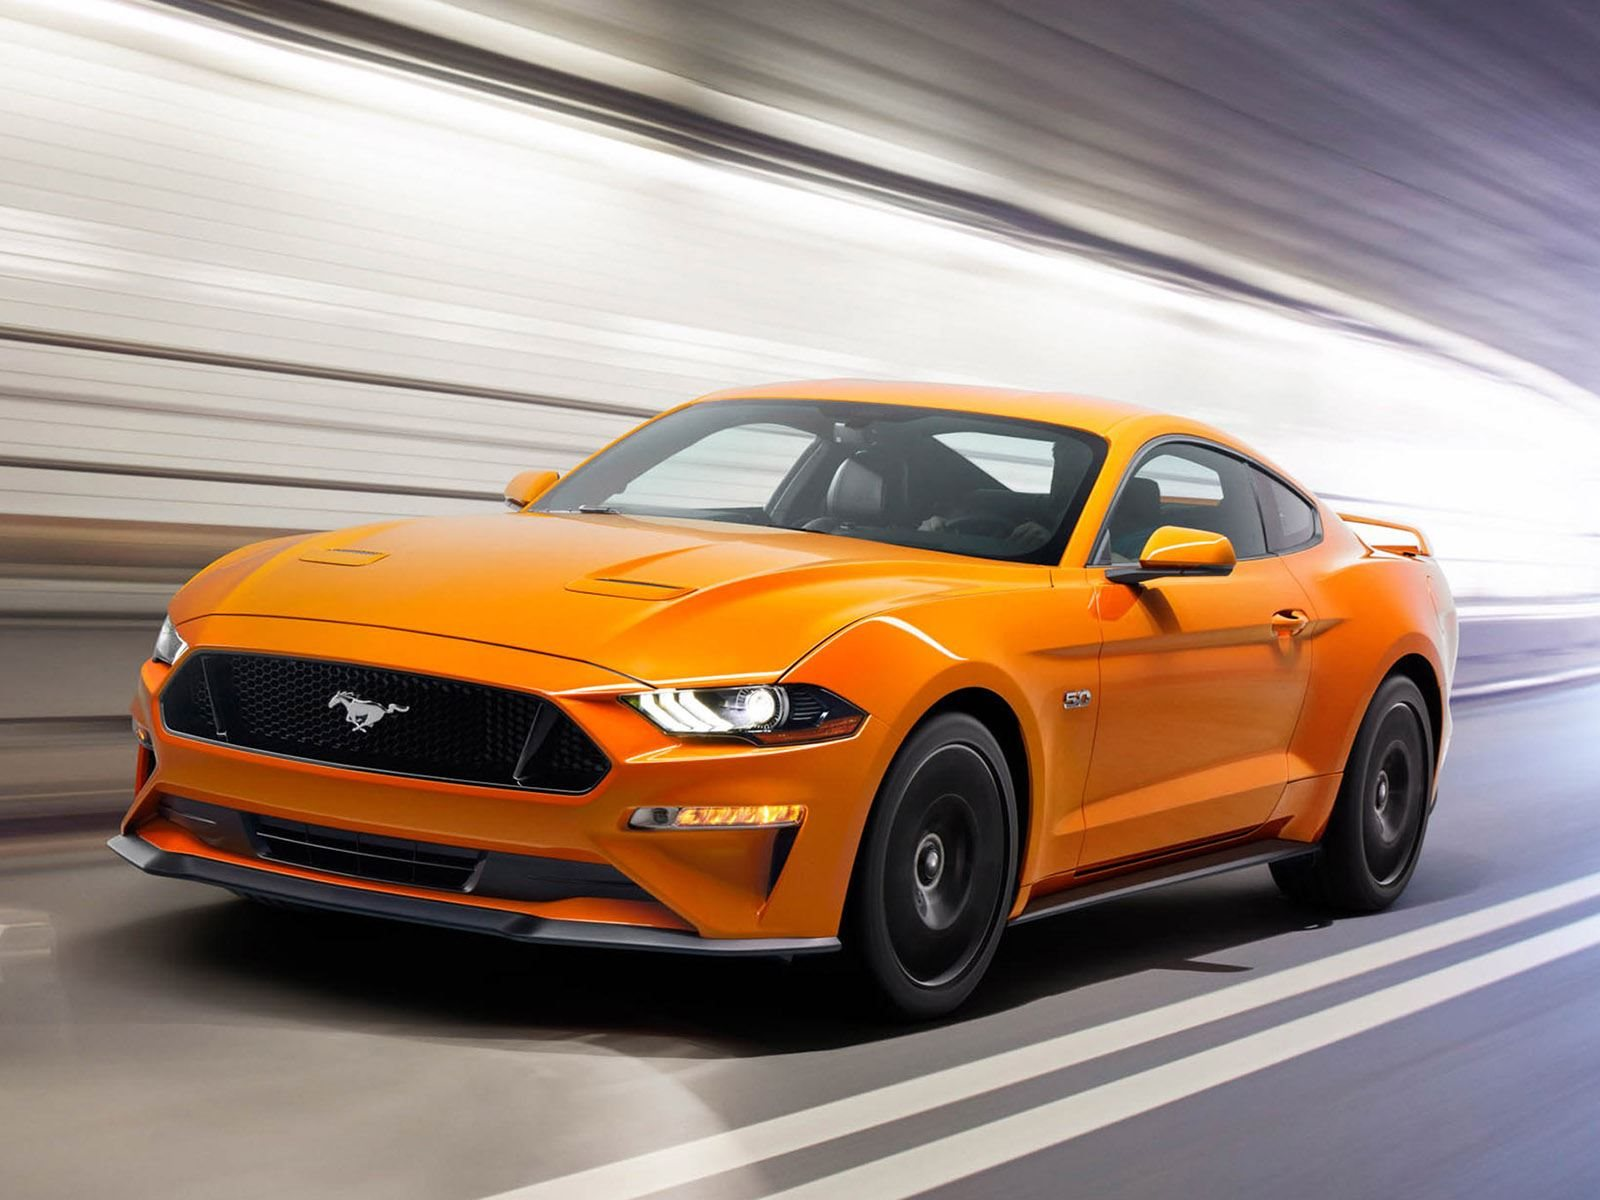 Next-Gen Ford Mustang Could Have All-Wheel Drive And Electric Power